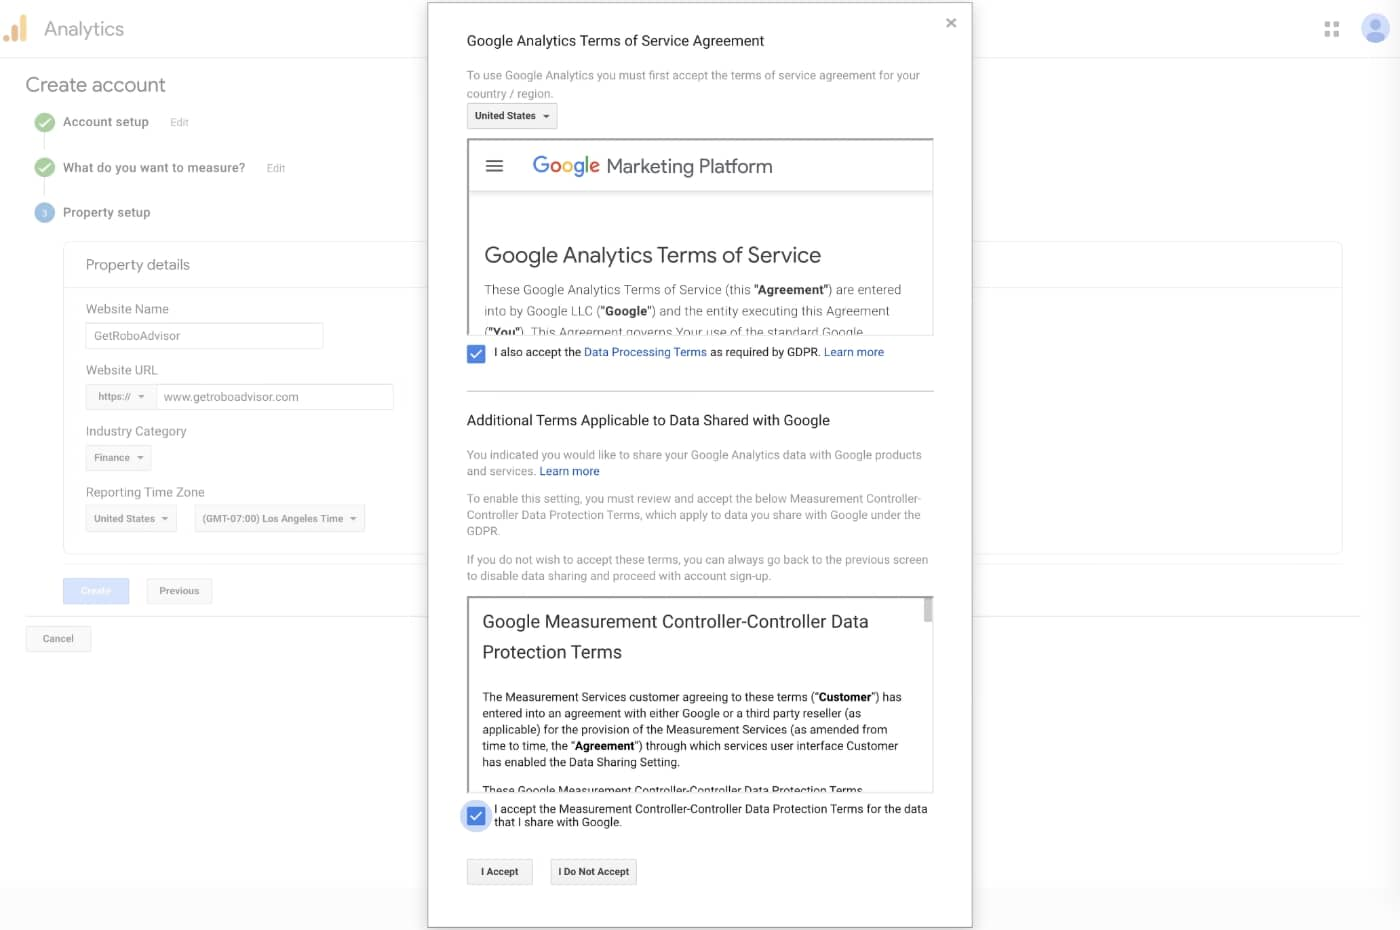 Google Analytics - Terms of Service Agreement